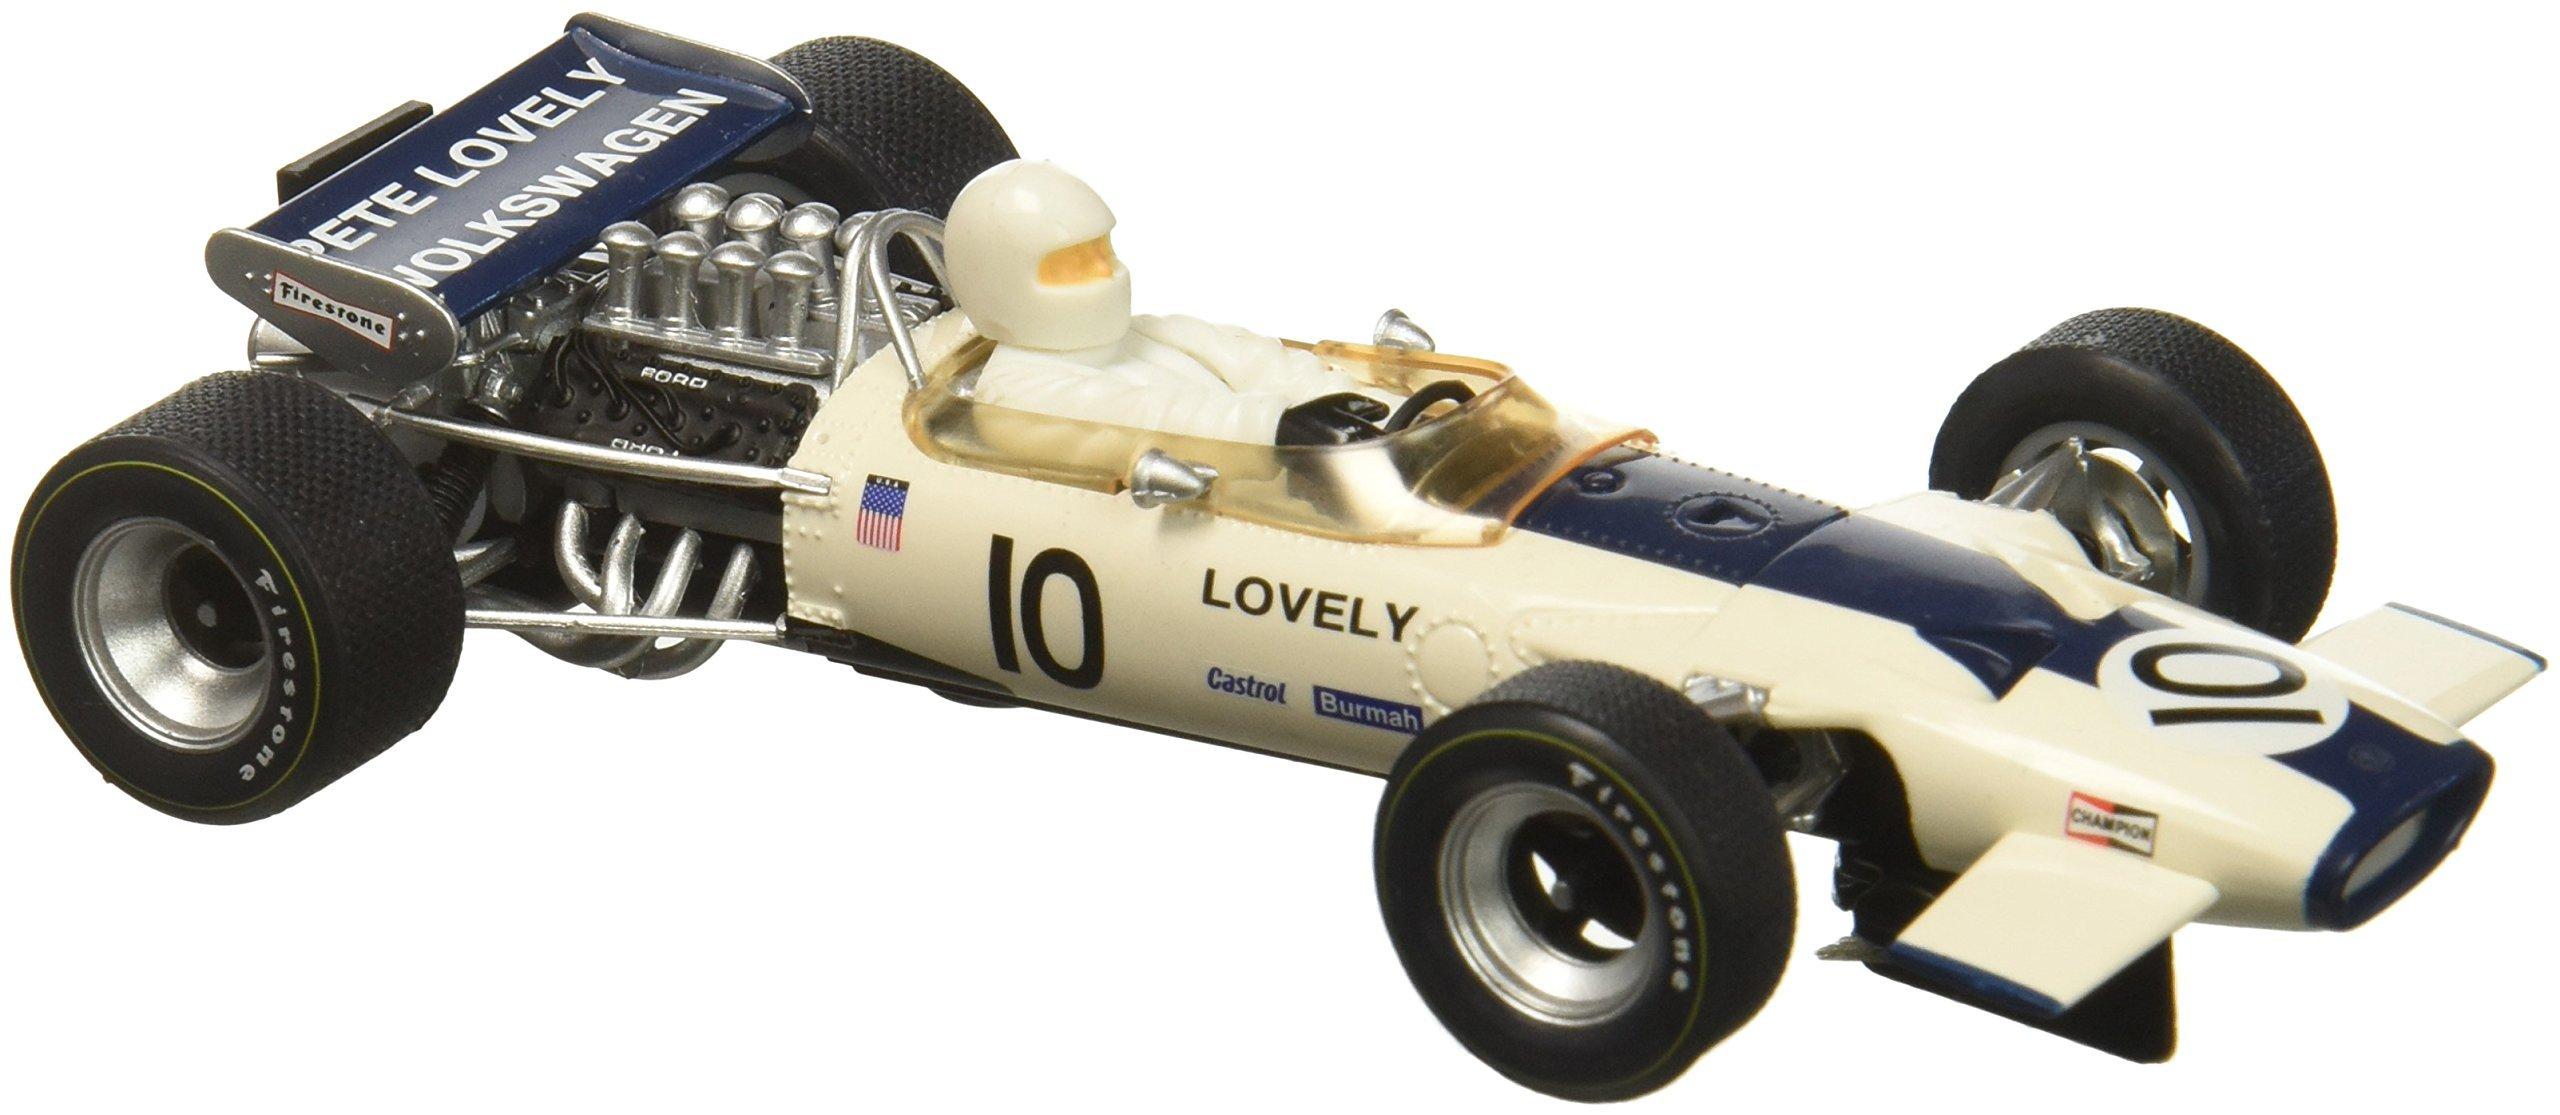 Scalextric Team Lotus 49 Pete Lovely #10 1:32 Slot Car C3707 Vehicle Replicas by Scalextric